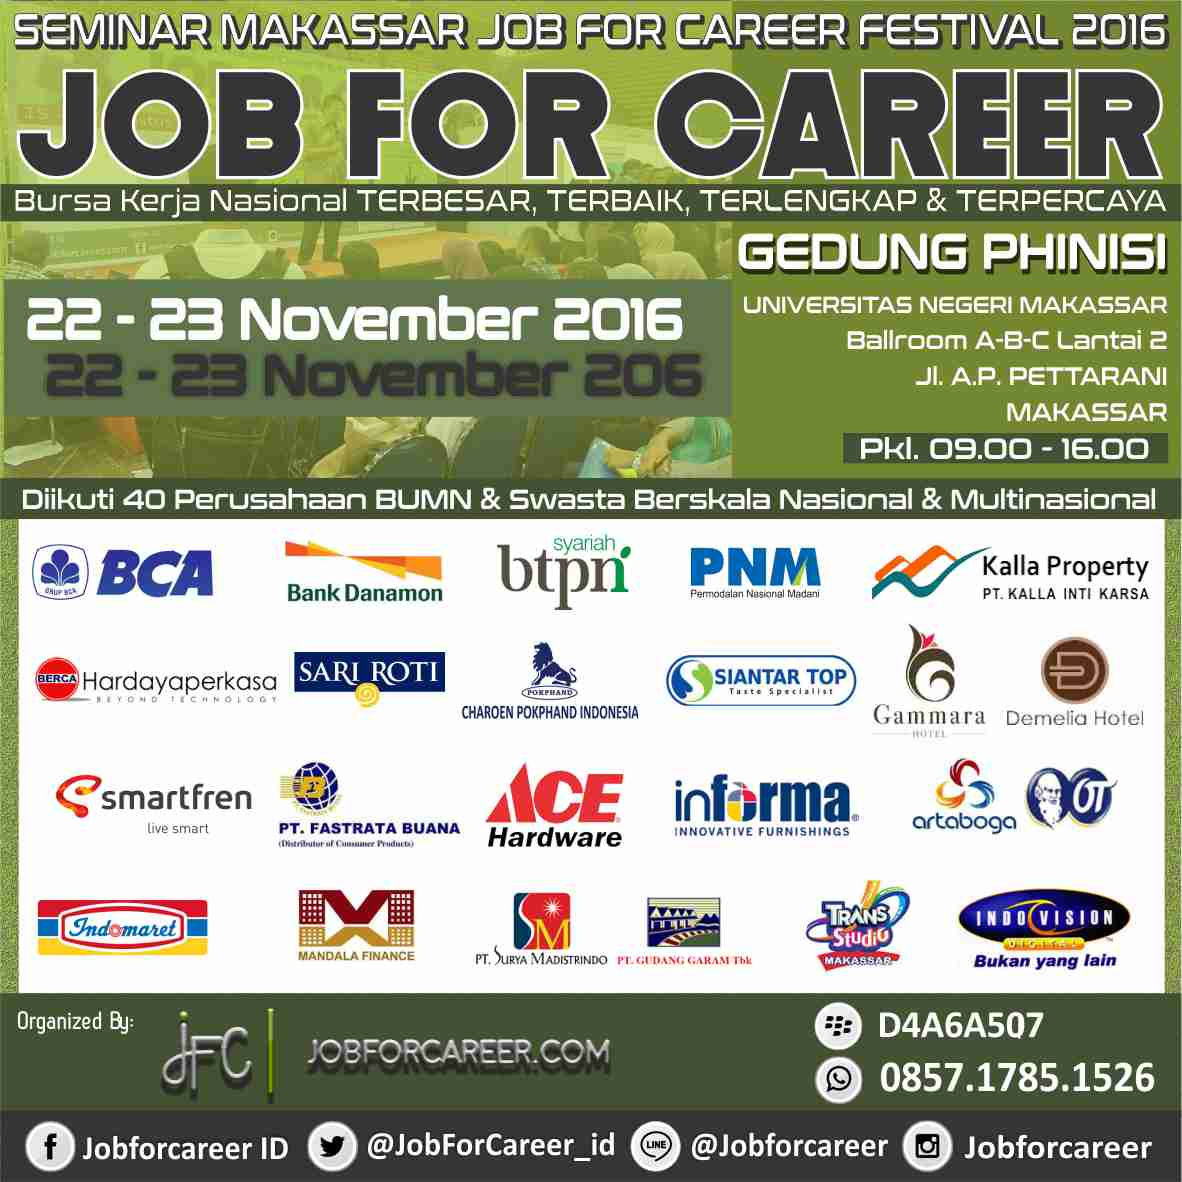 Makassar National Job For Career Festival - Gedung Phinisi UNM, 22 - 23 November 2016